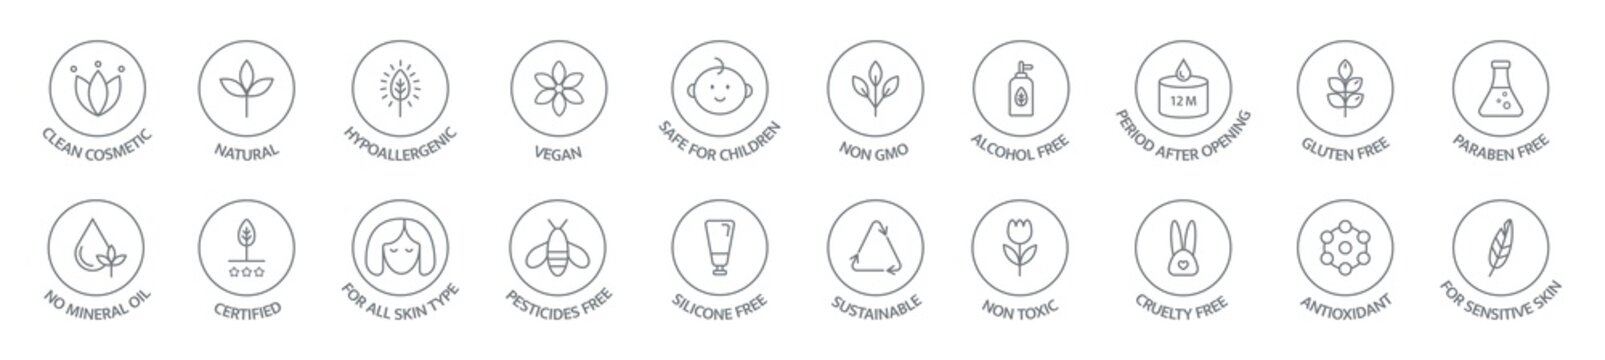 Organic and natural cosmetic line icon collection. Vegan, bio food. Organic products badges. Clean cosmetic, non toxic, hypoallergenic, safe for children. GMO free emblems. Vector illustration